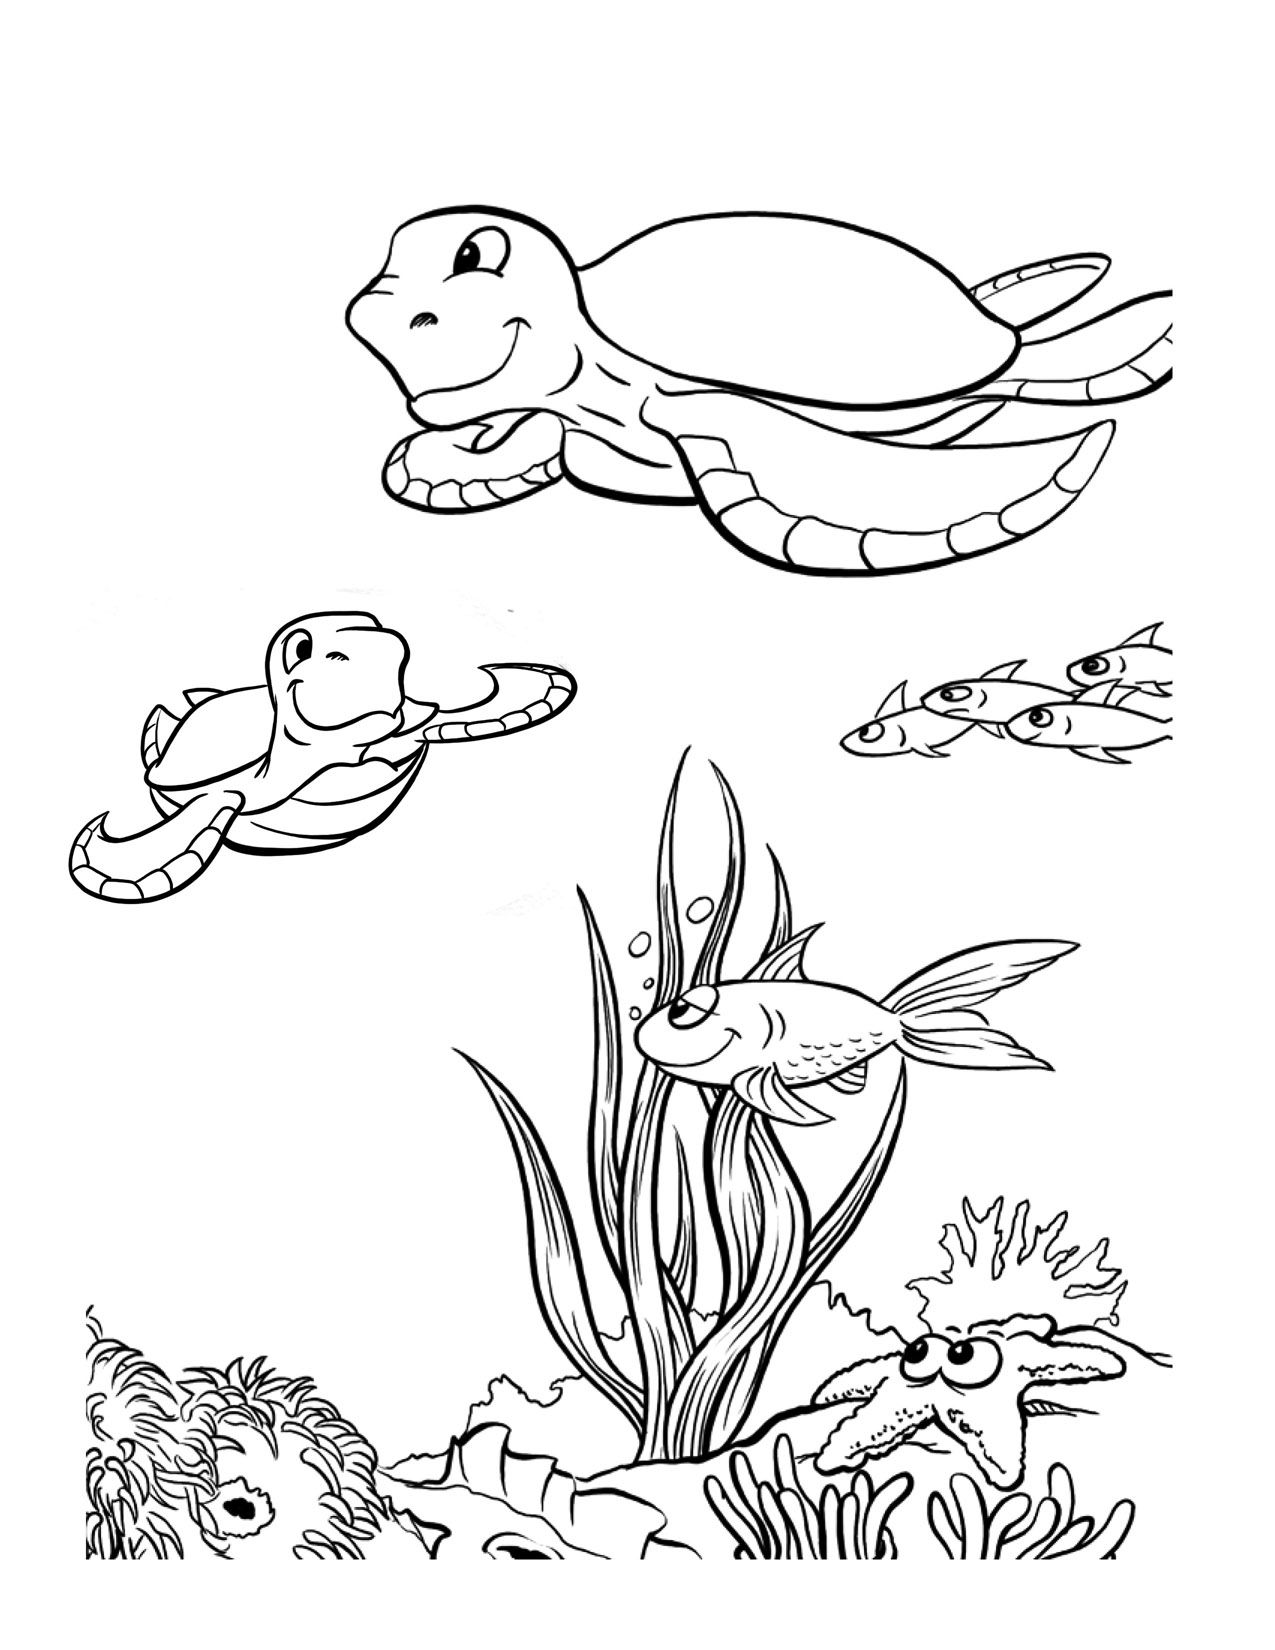 Cool Baby Zoo Animal Coloring Pages 571 678 Coloring Picture Animal